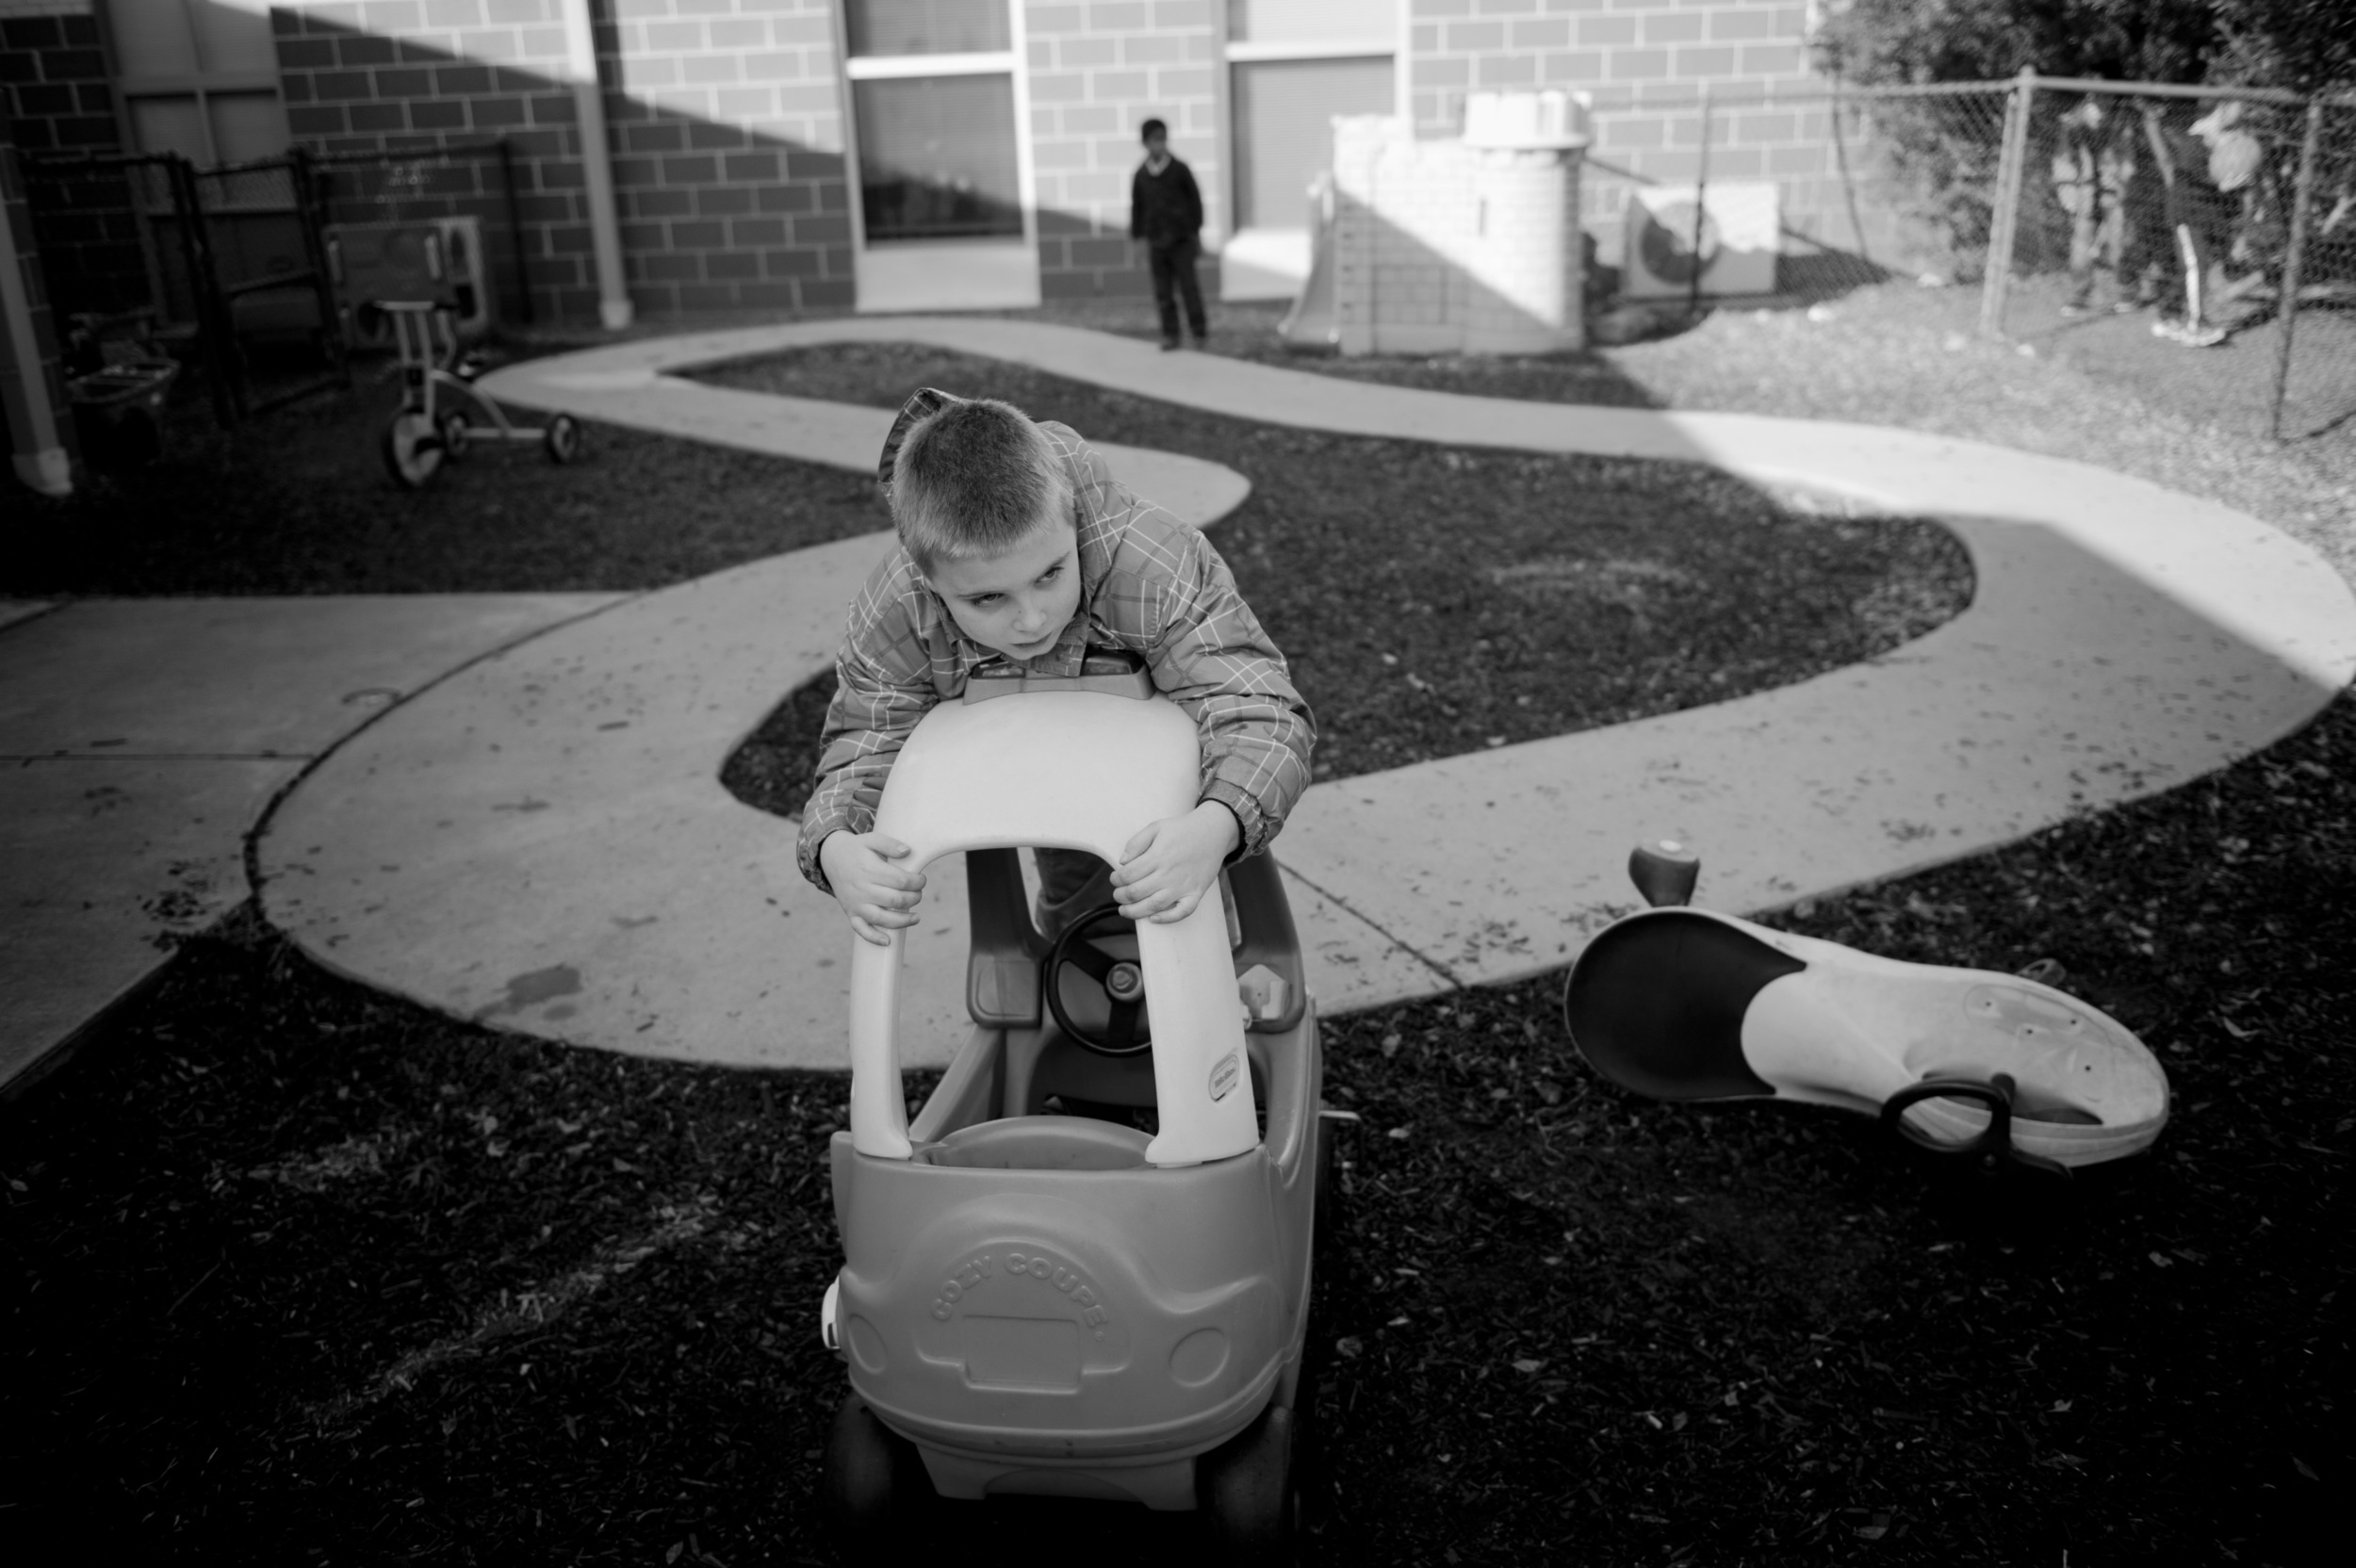 Marcus O'Loughlin looks past his fenced in play area, designated for children with autism, to the children outside. This is an outtake from the story World Within Our Own